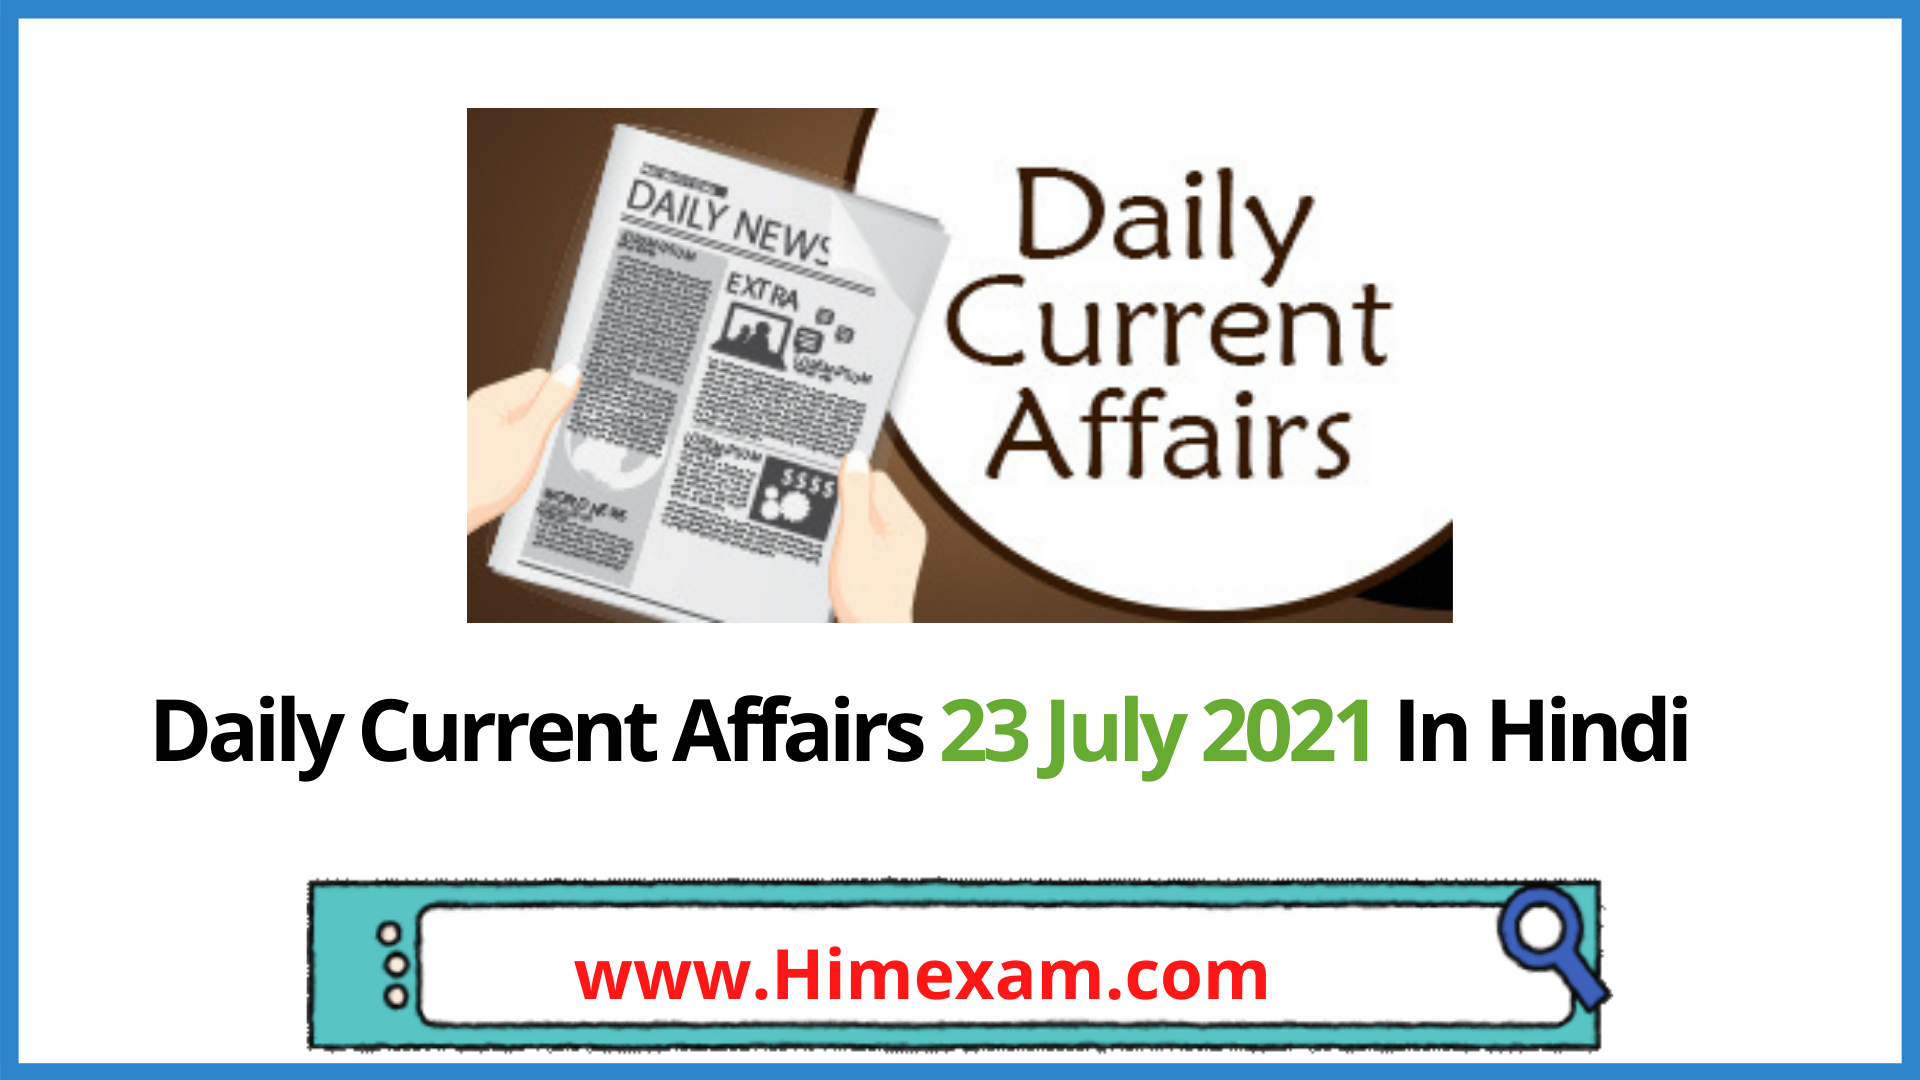 Daily Current Affairs 23 July 2021 In Hindi